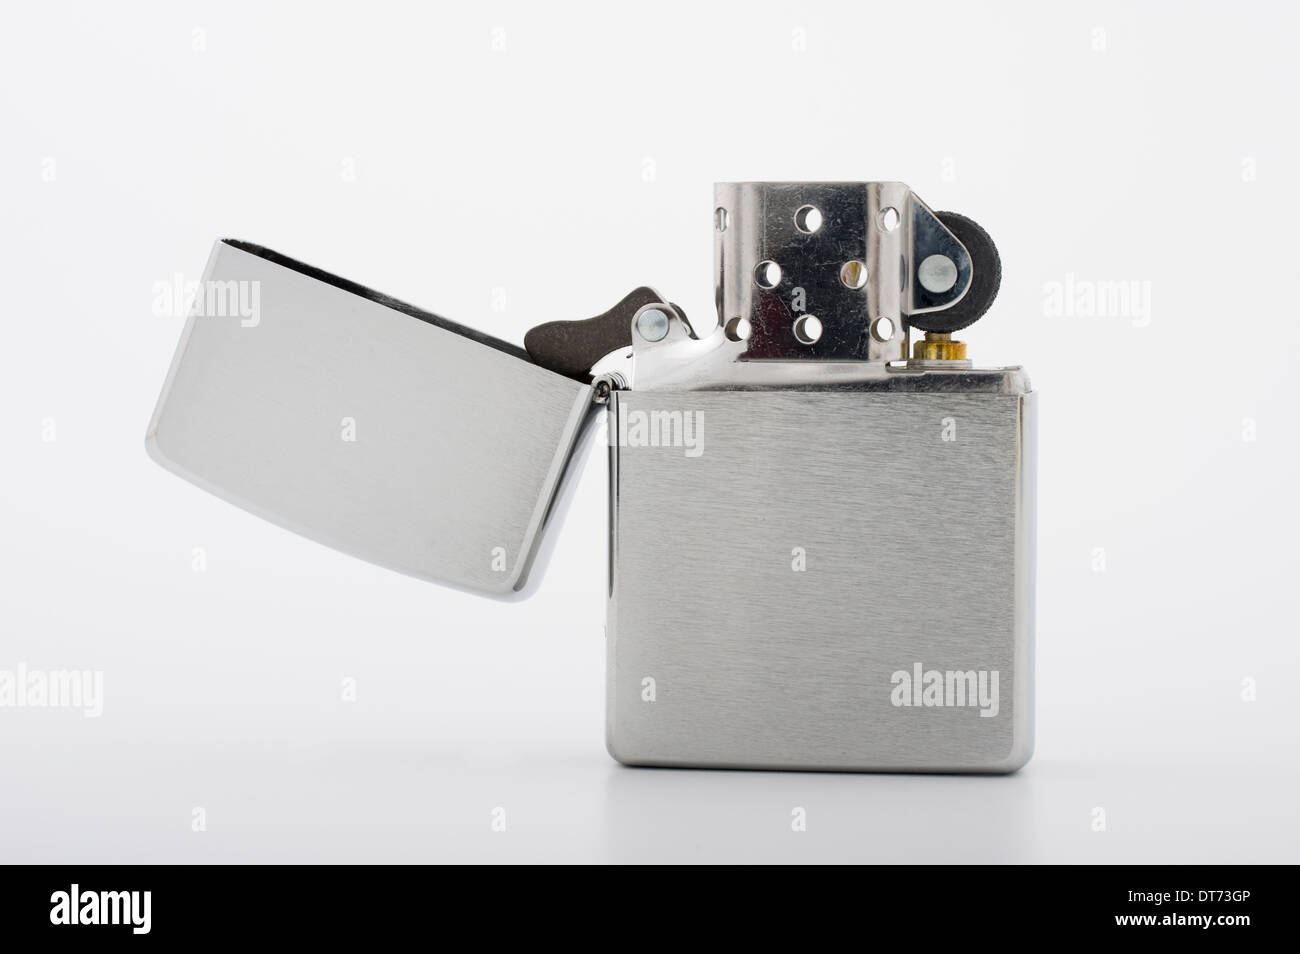 Zippo Cigarette lighter. made in Bradford, Pennsylvania, USA U.S.A. - Stock Image